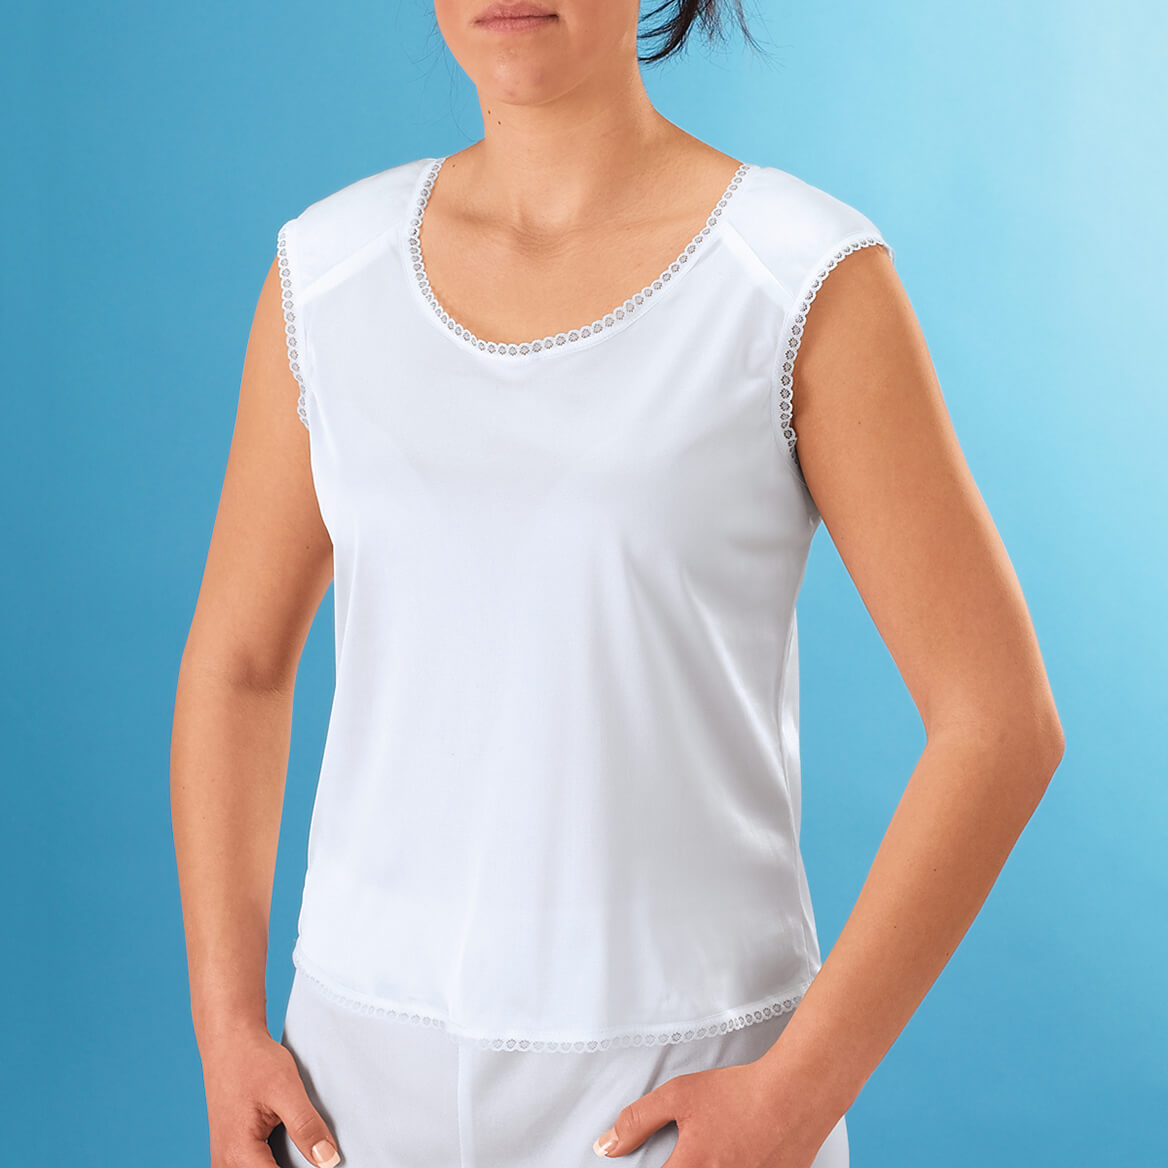 Camisole With Shoulder Pads Padded Camisole Miles Kimball